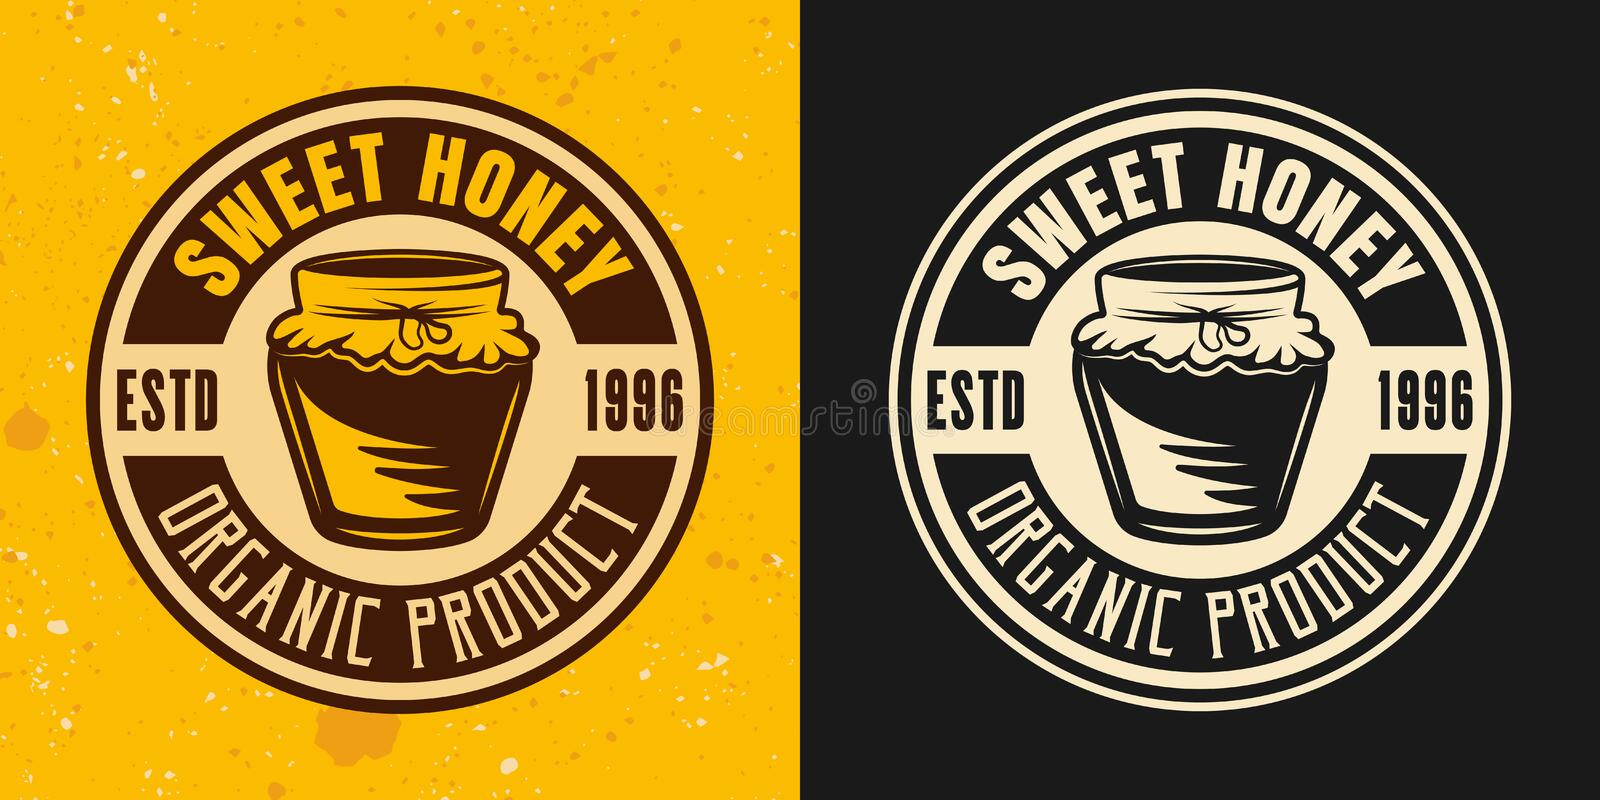 Sweet honey two colored styles vector round emblem royalty free illustration